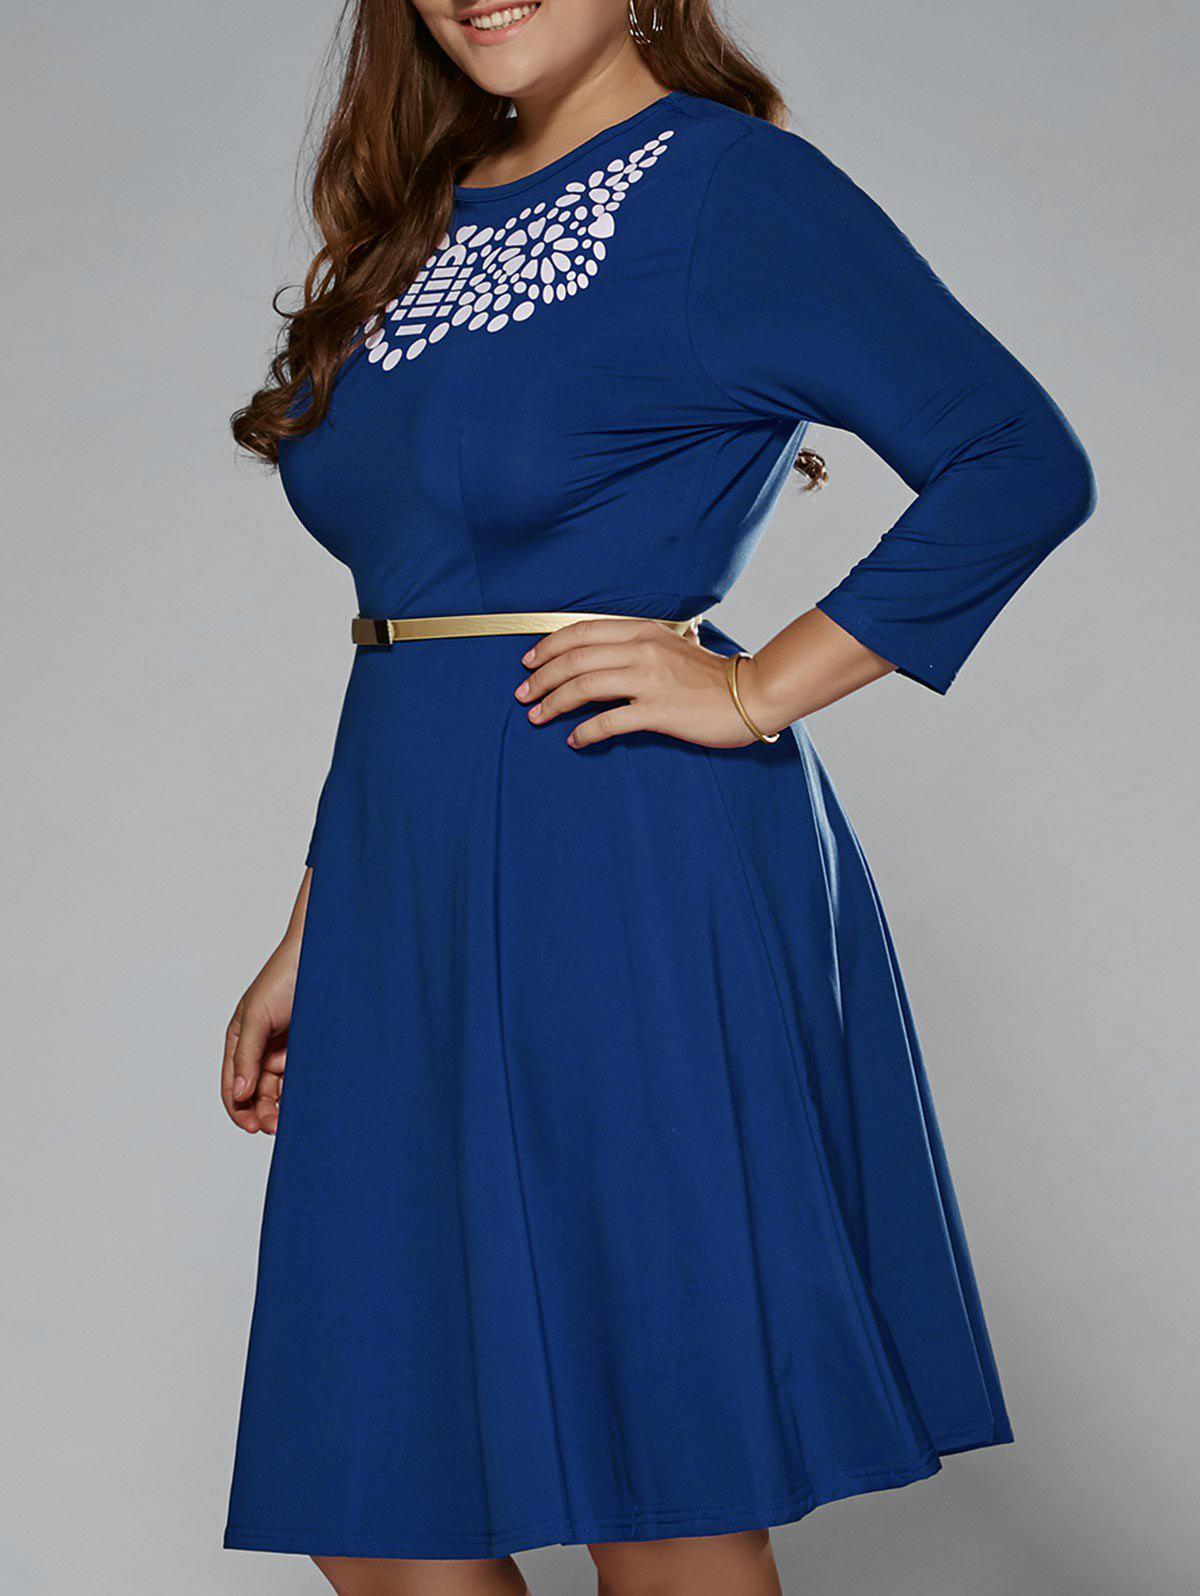 2019 Plus Size Printed Fit And Flare Modest Dress | Rosegal.com